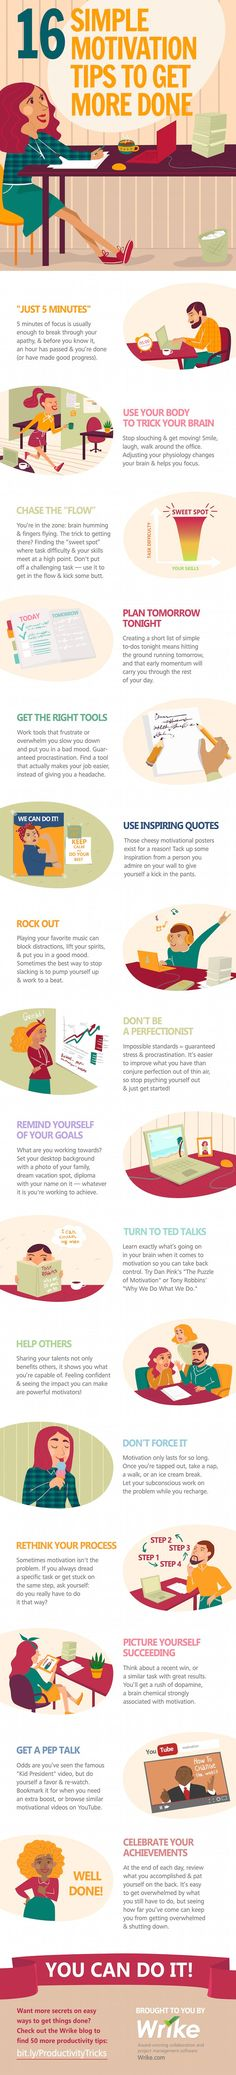 16 Productivity Tips to Propel You Into Action [Infographic]